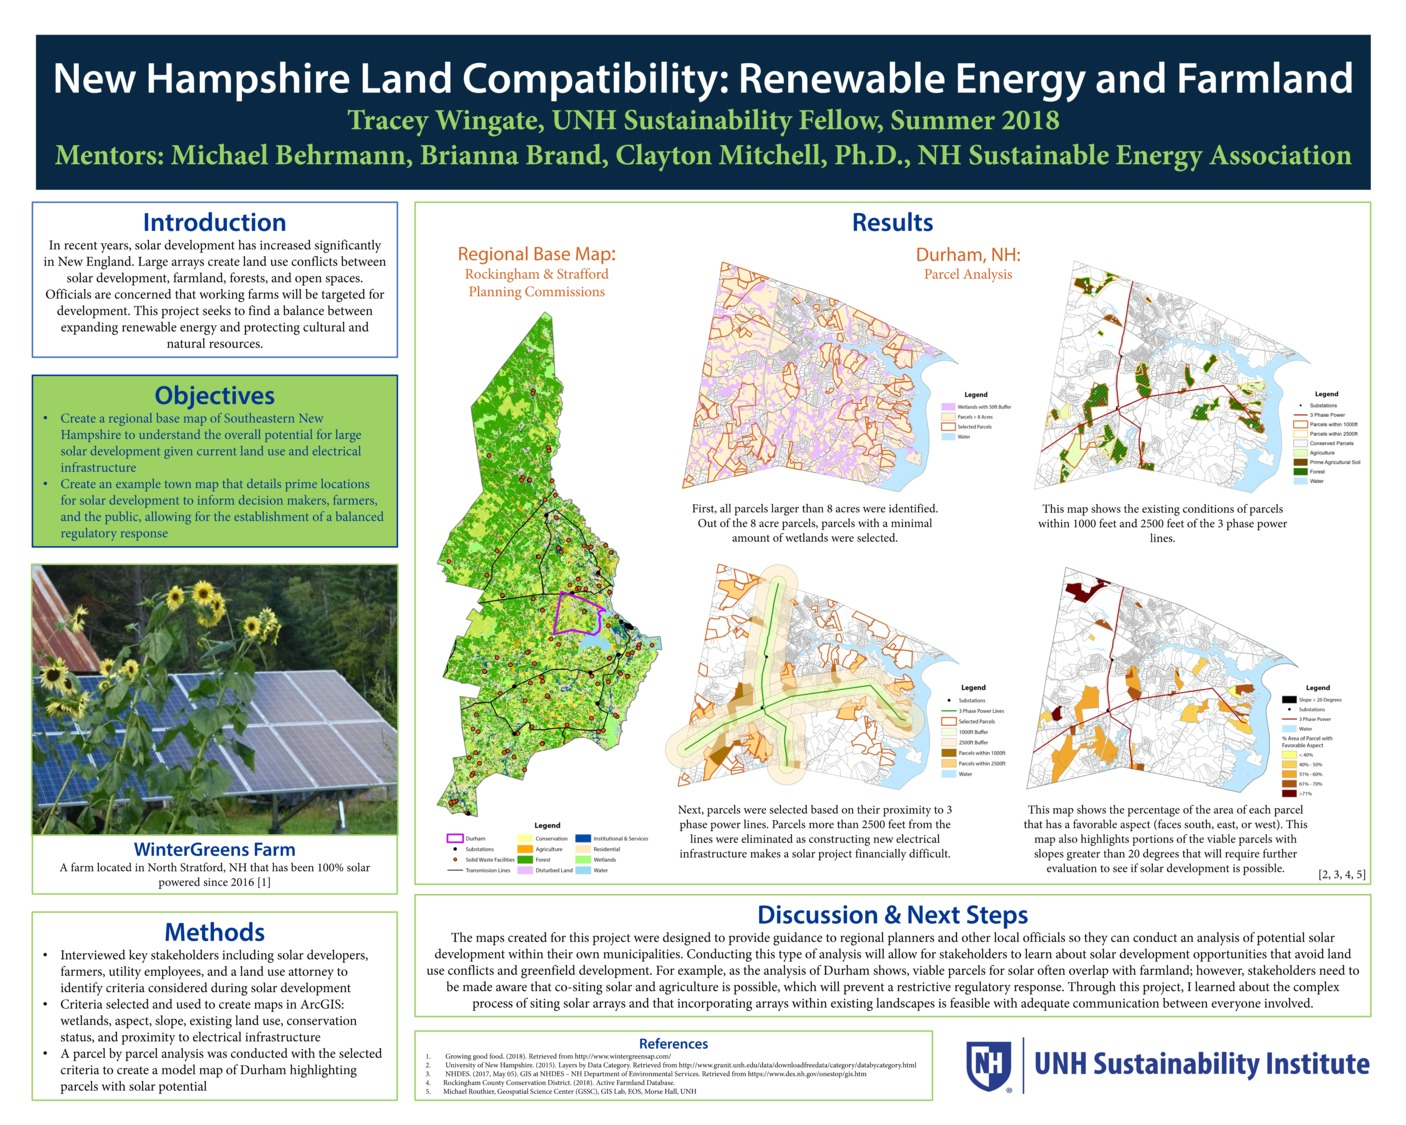 New Hampshire Land Compatibility: Renewable Energy And Farm Land by twingate